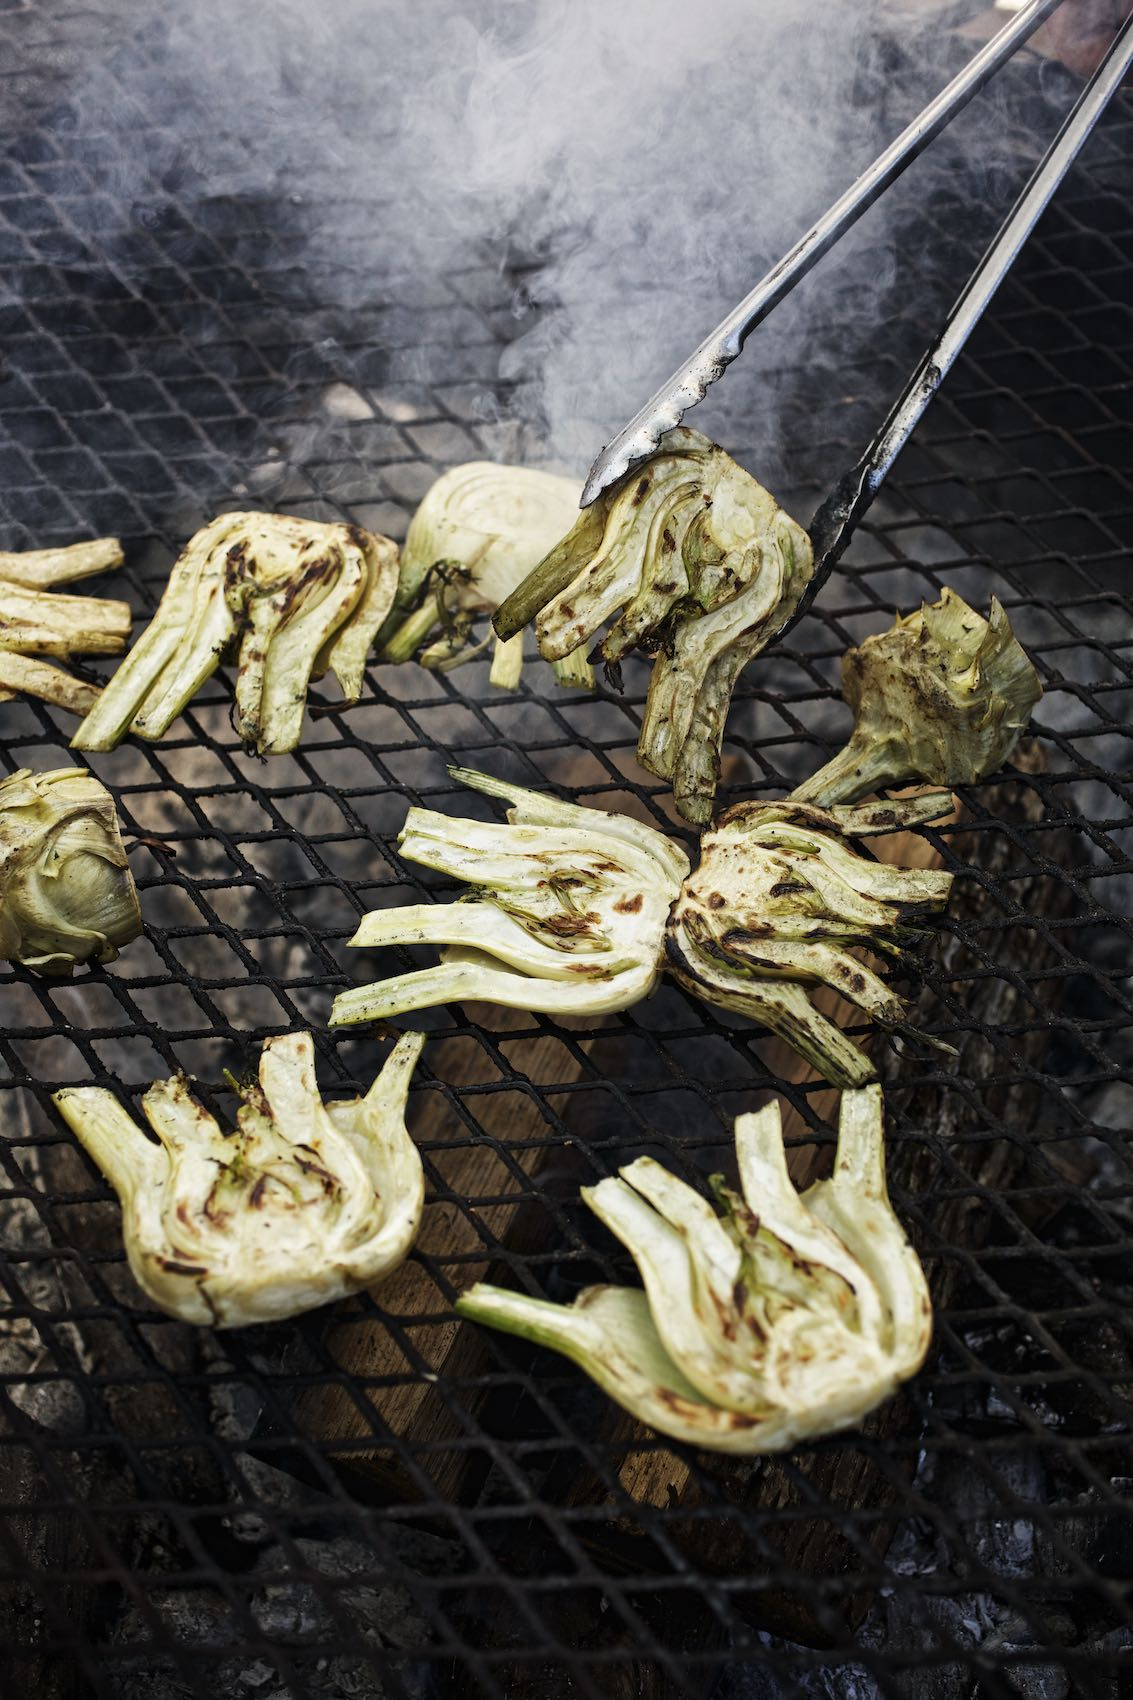 Jody Horton Photography - Fennel heads and artichoke hearts on grill.